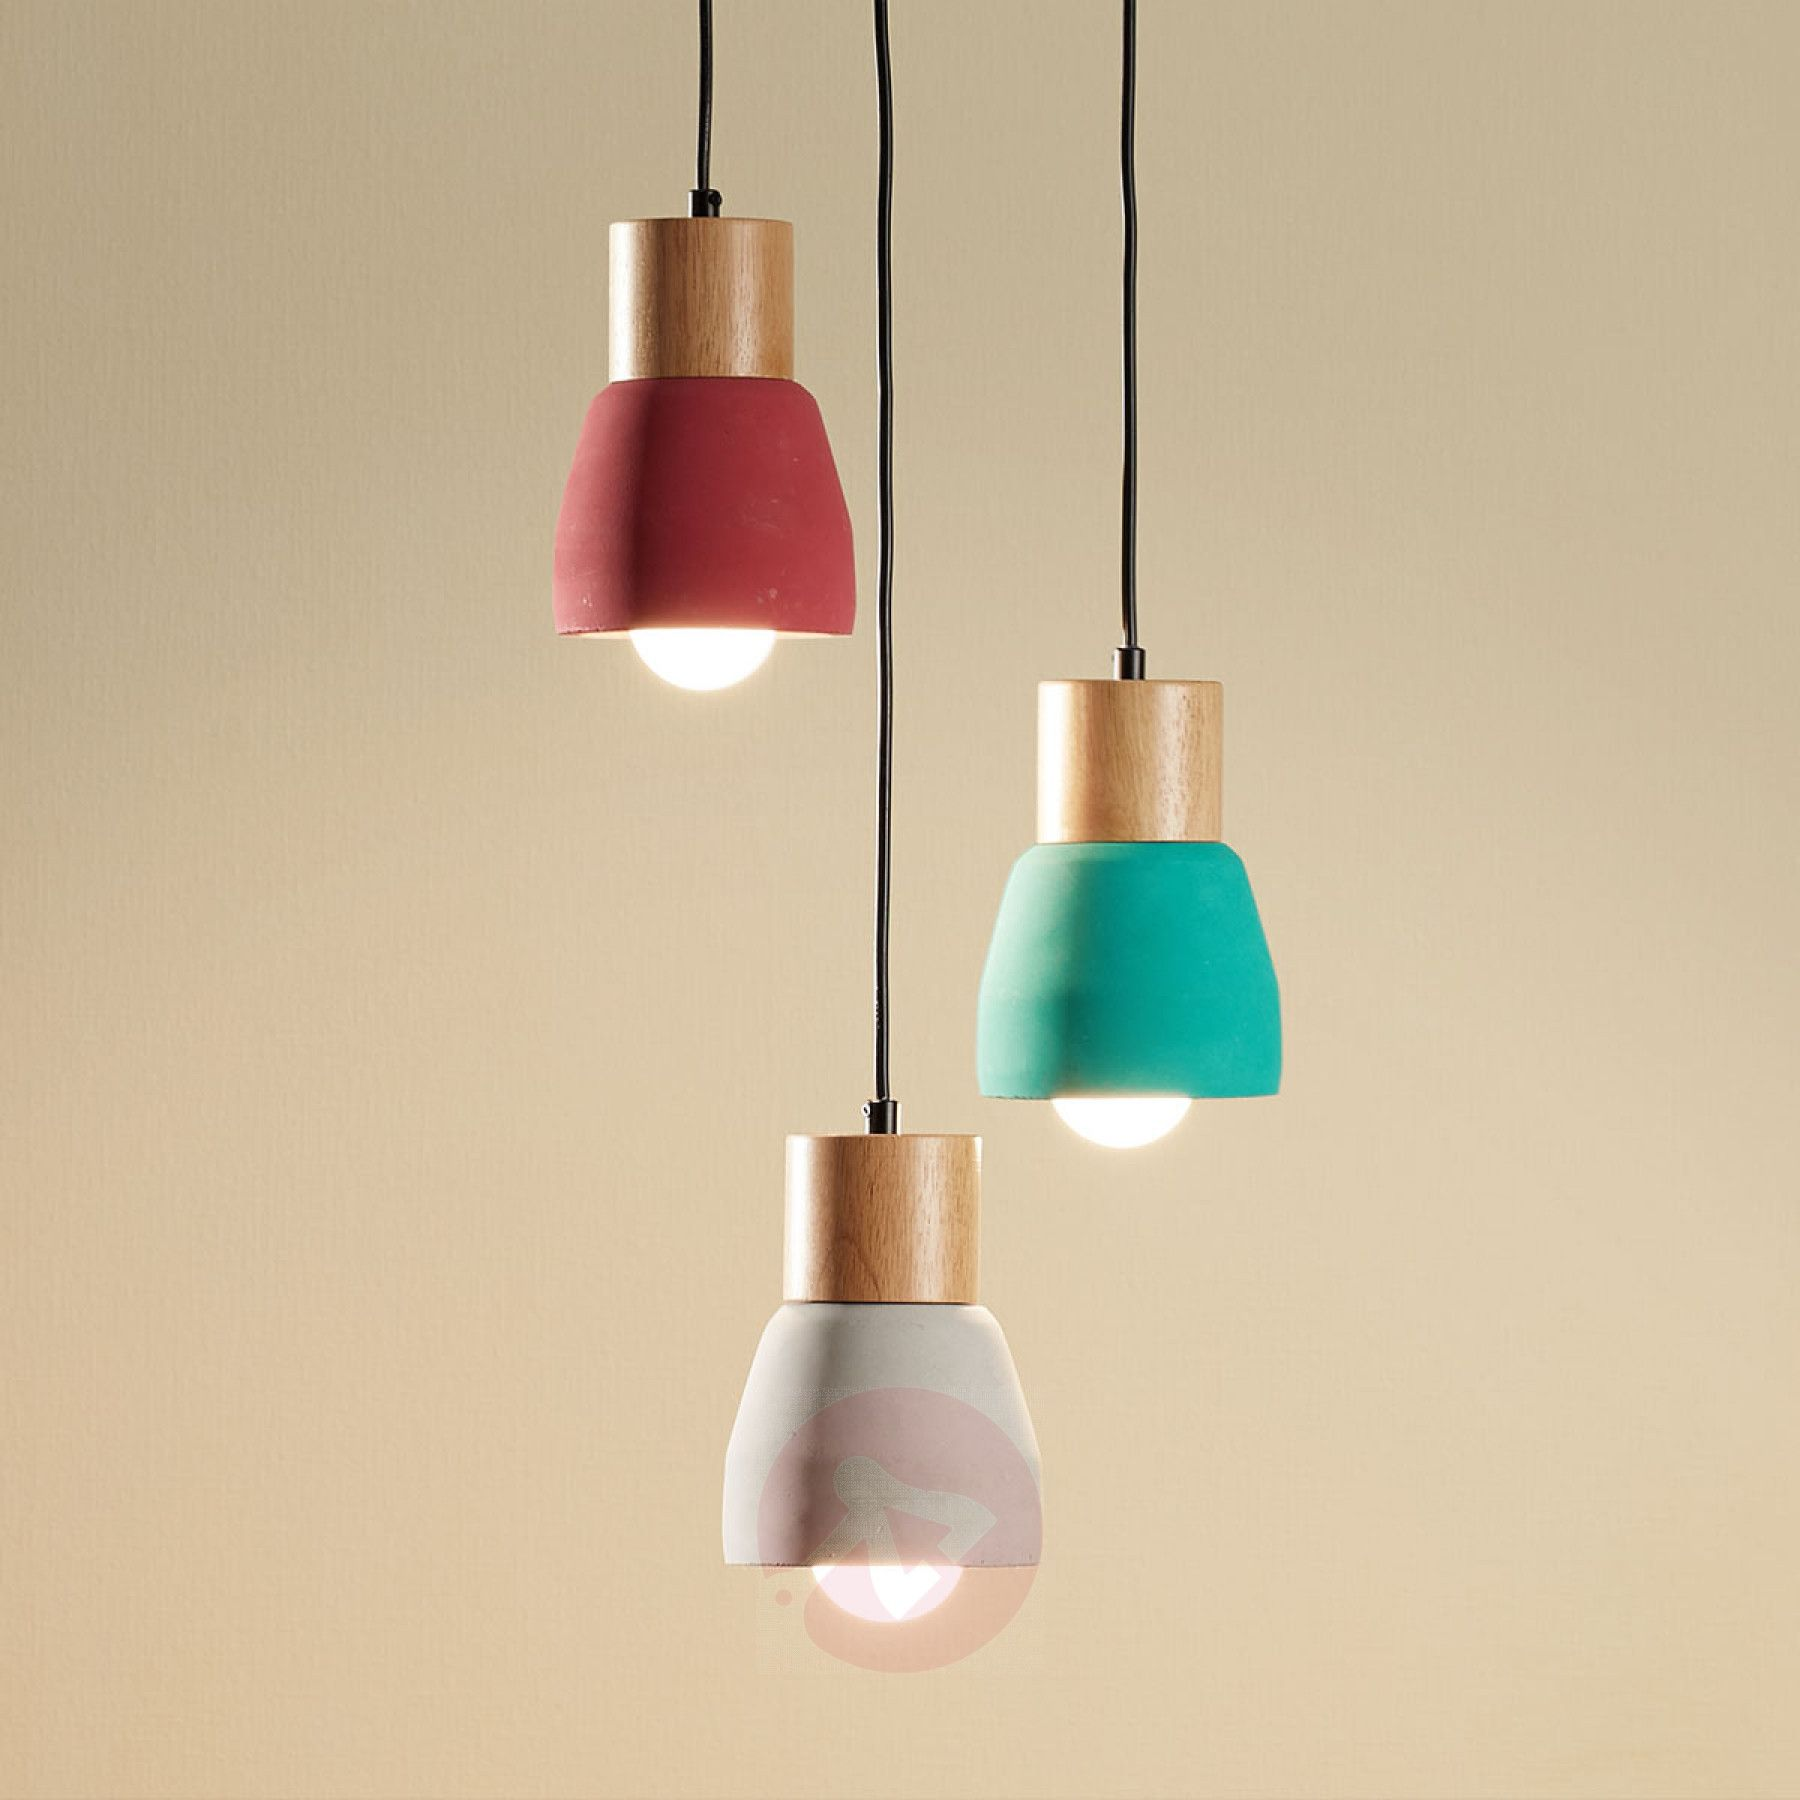 Concrete Pendant Light Margot With Wood 3 Bulb In 2020 Bulb Light Colored Wood Pendant Lamp